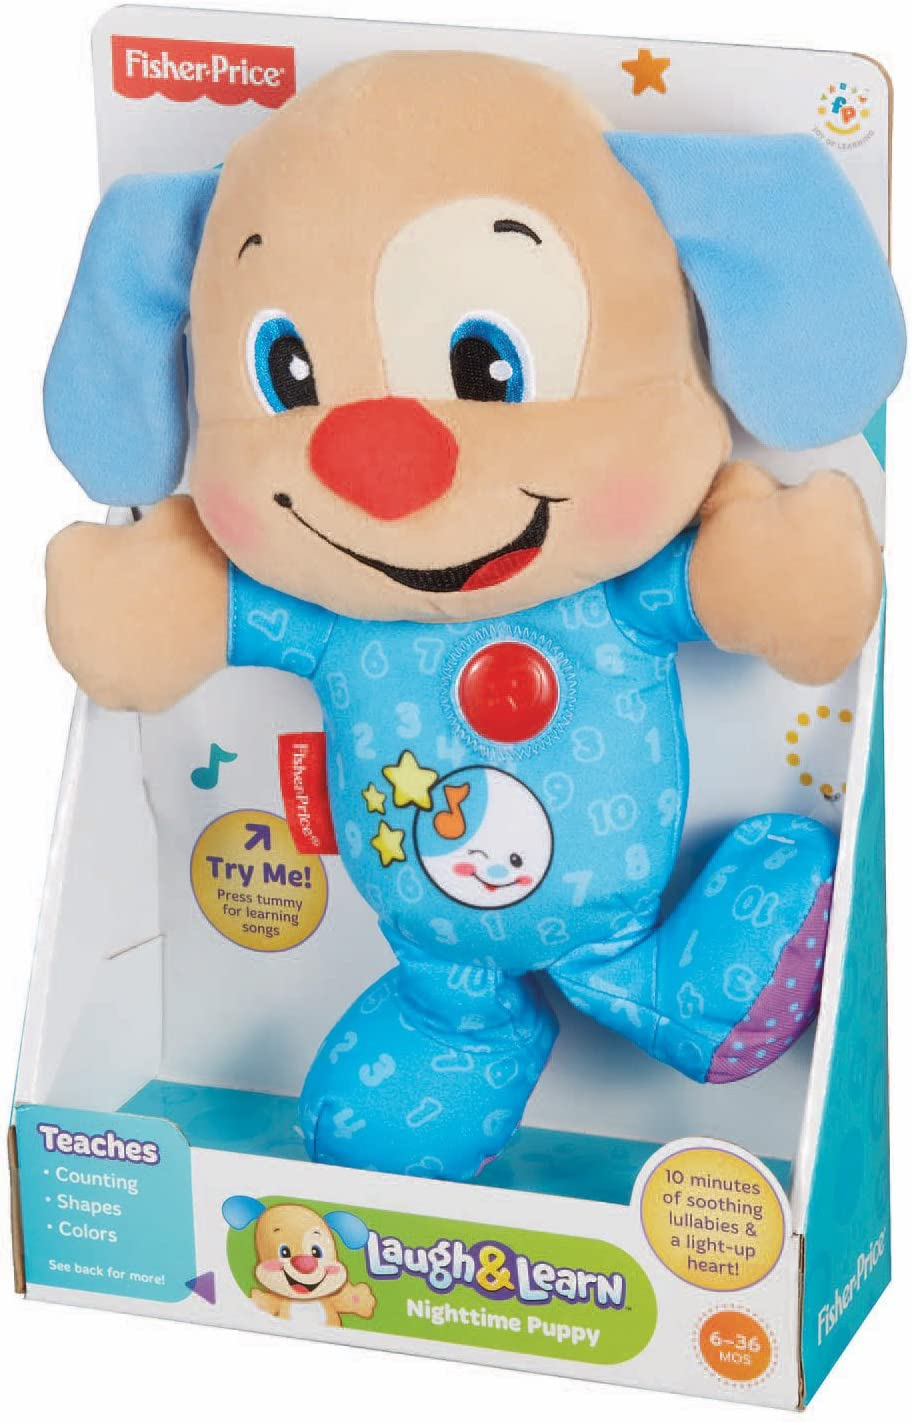 Fisher-Price Laugh /& Learn Nighttime Puppy